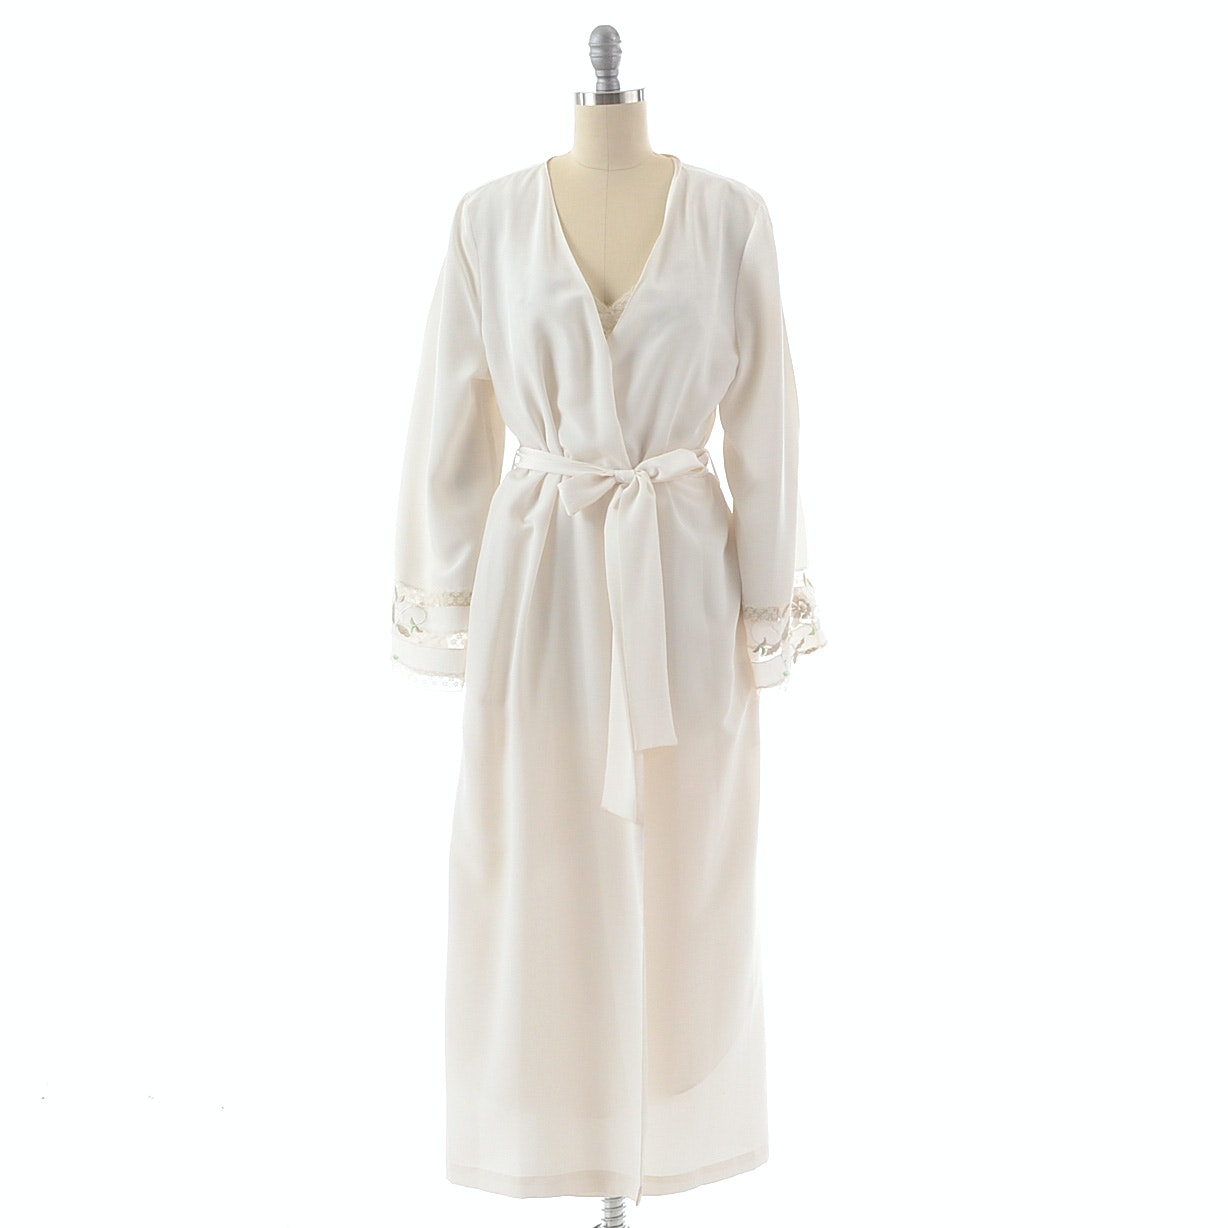 Natori Saks Fifth Avenue Nightgown and Robe